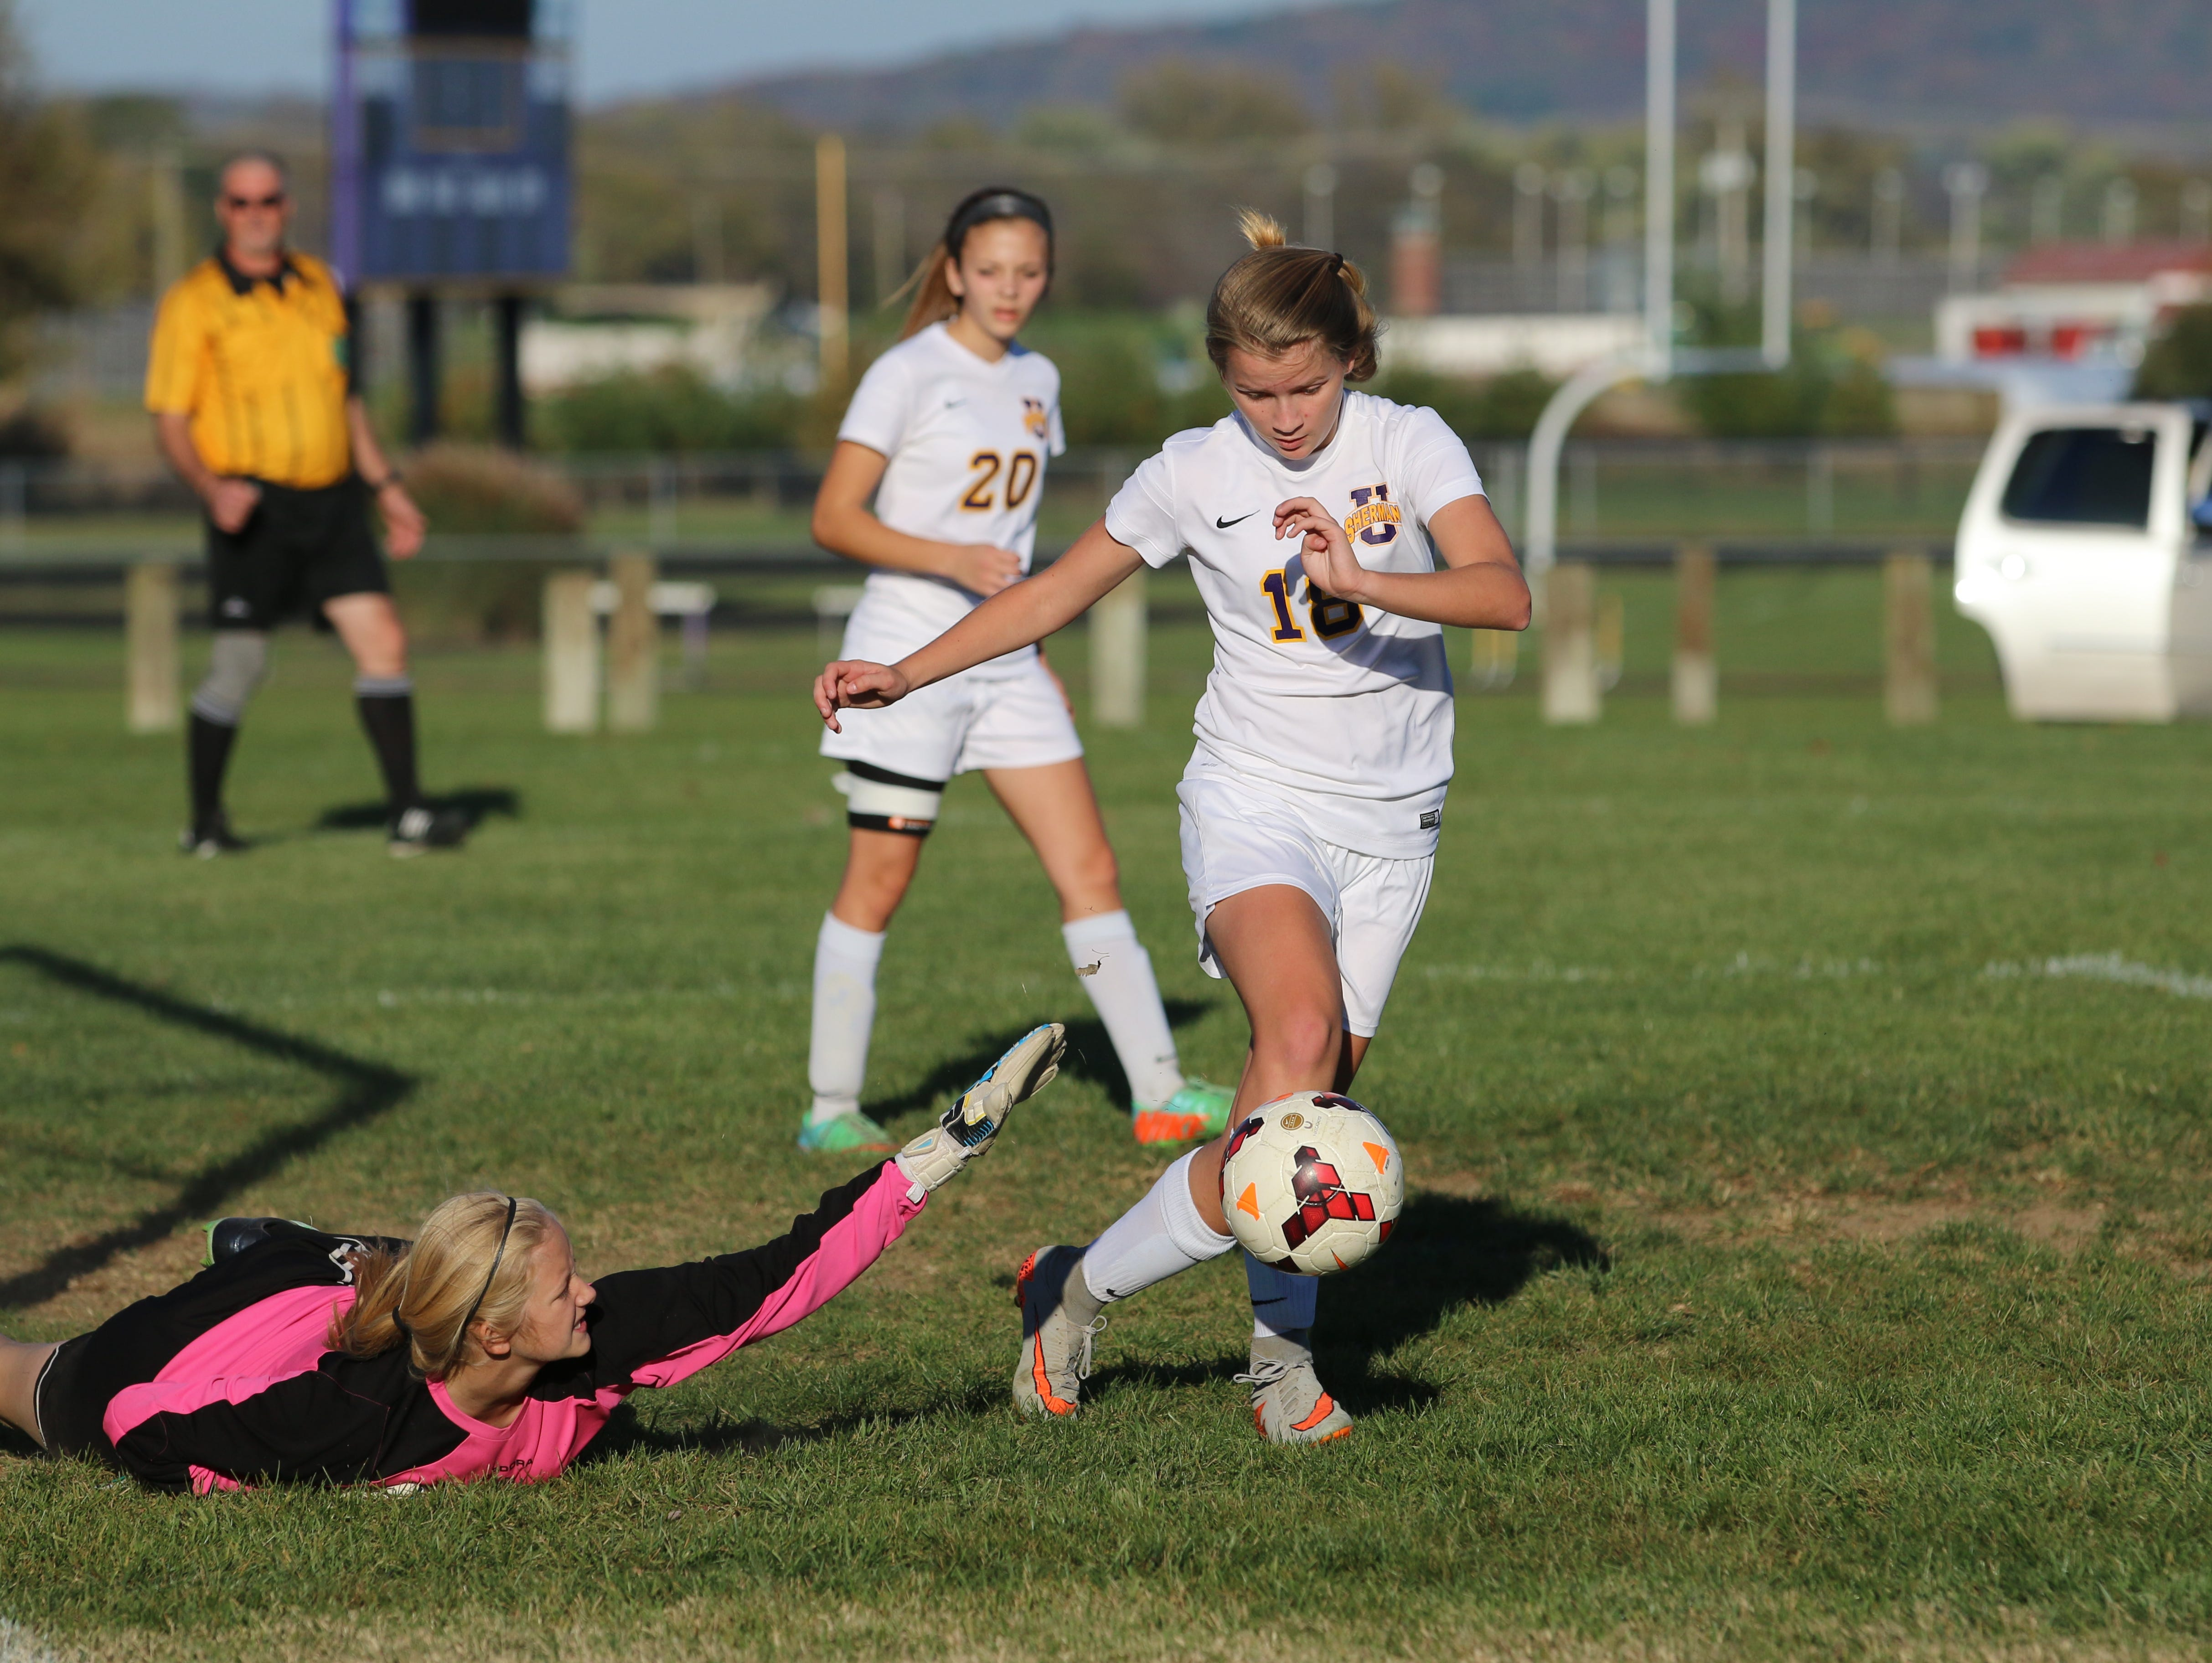 Unioto's Jayla Campbell regains control of the ball before scoring her first of three goals, Tuesday night. Campbell and the Shermans beat Miami Trace, 6-0.